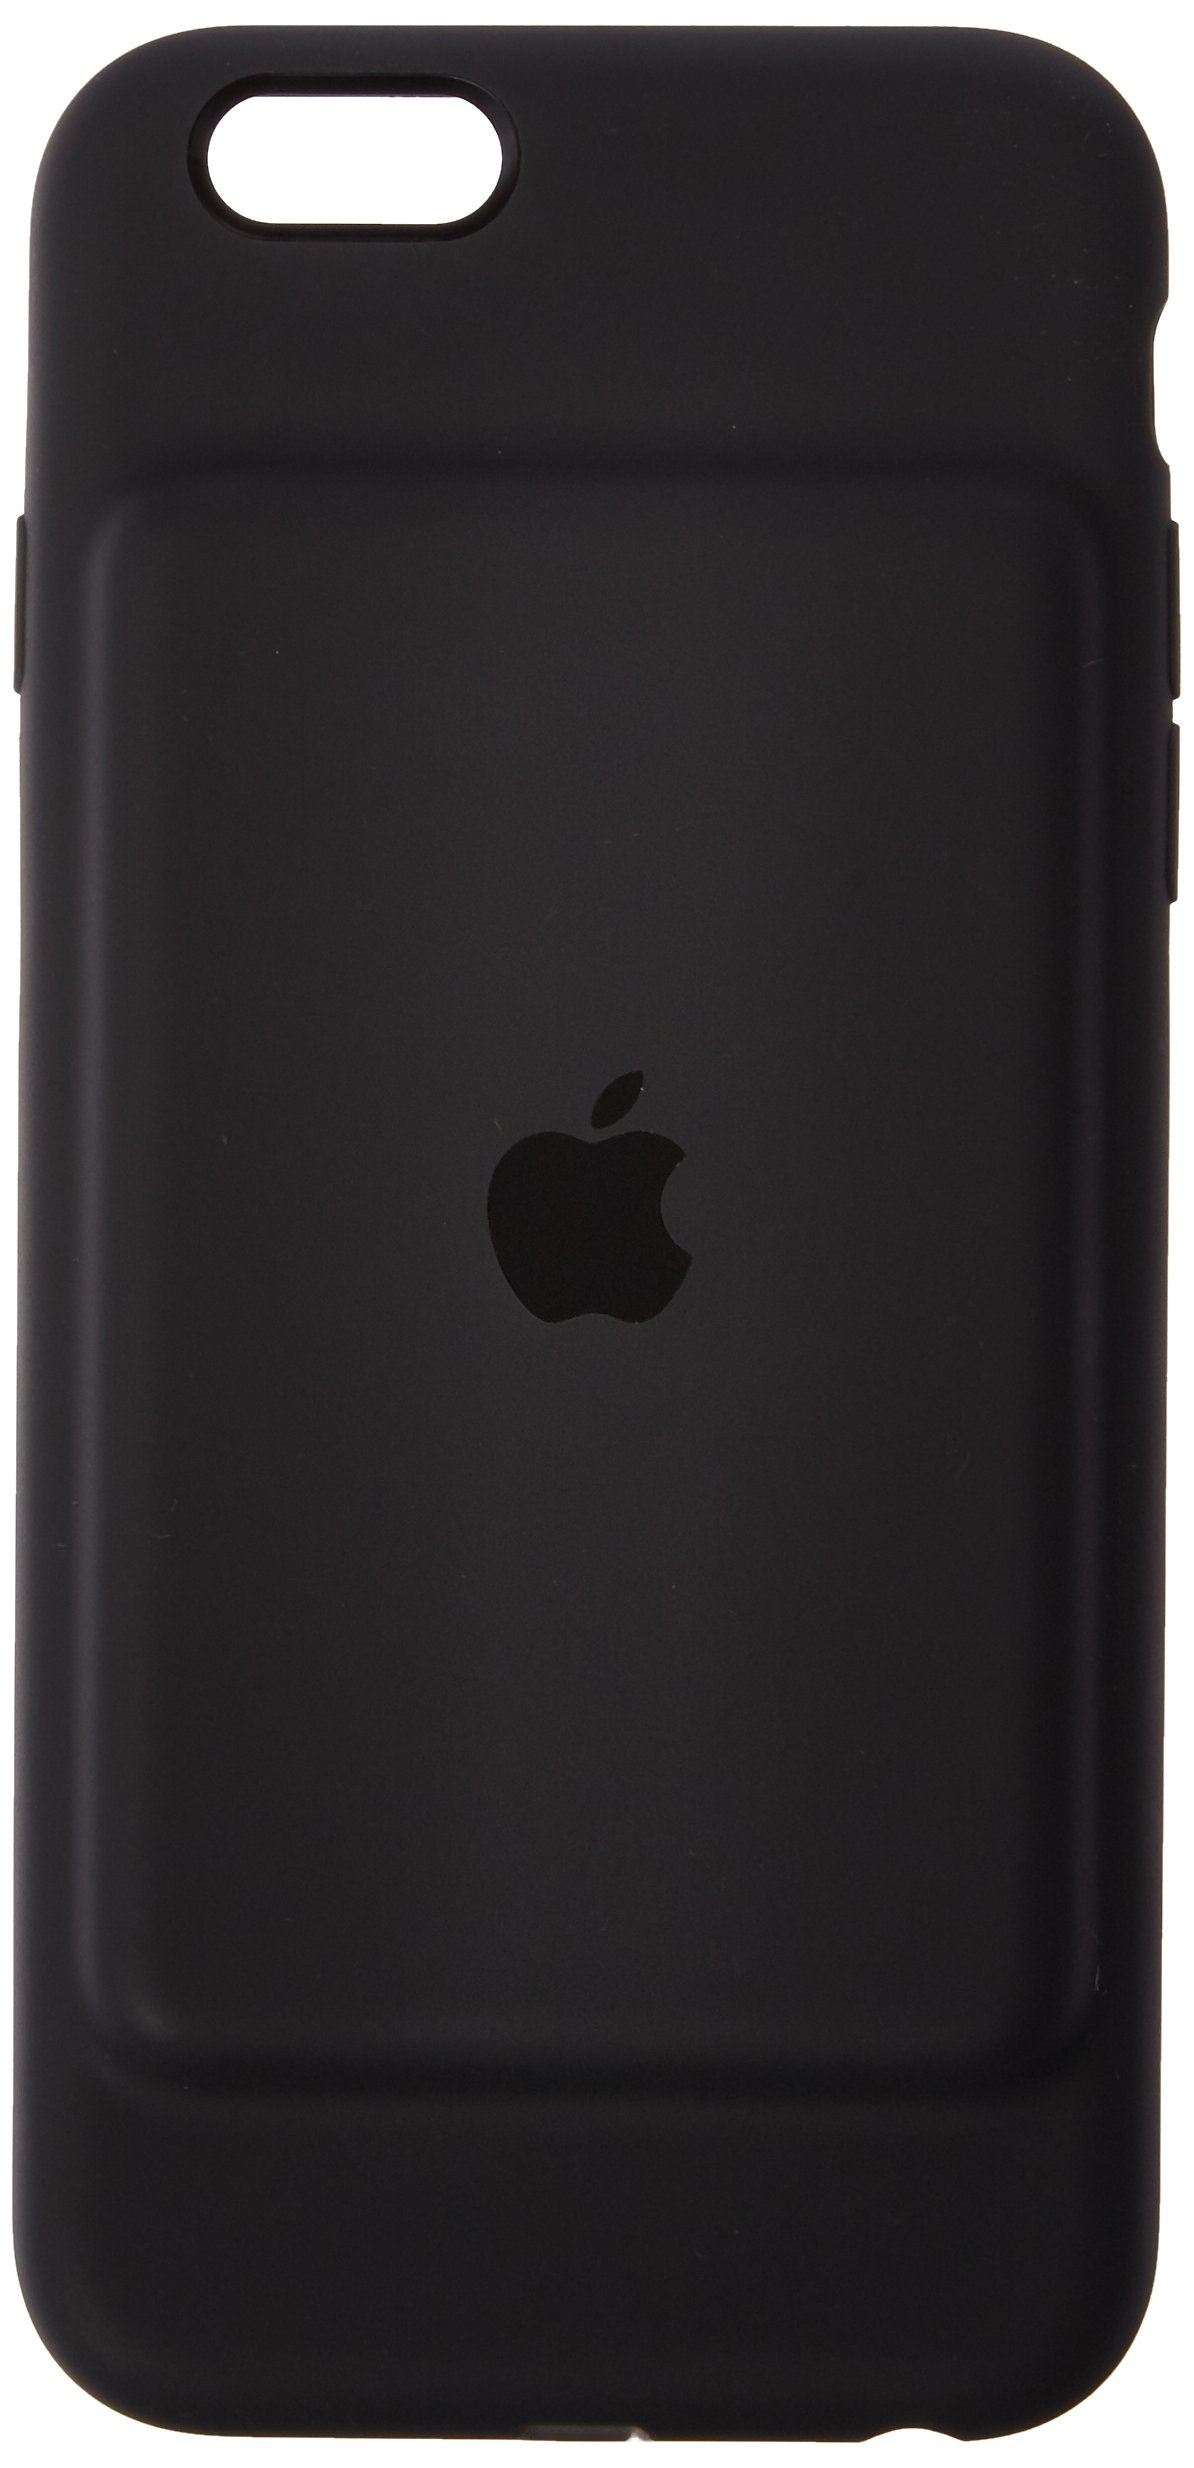 Apple Charcoal Gray Battery Case for iPhone 6 and 6S - Retail Packaging by Apple (Image #1)